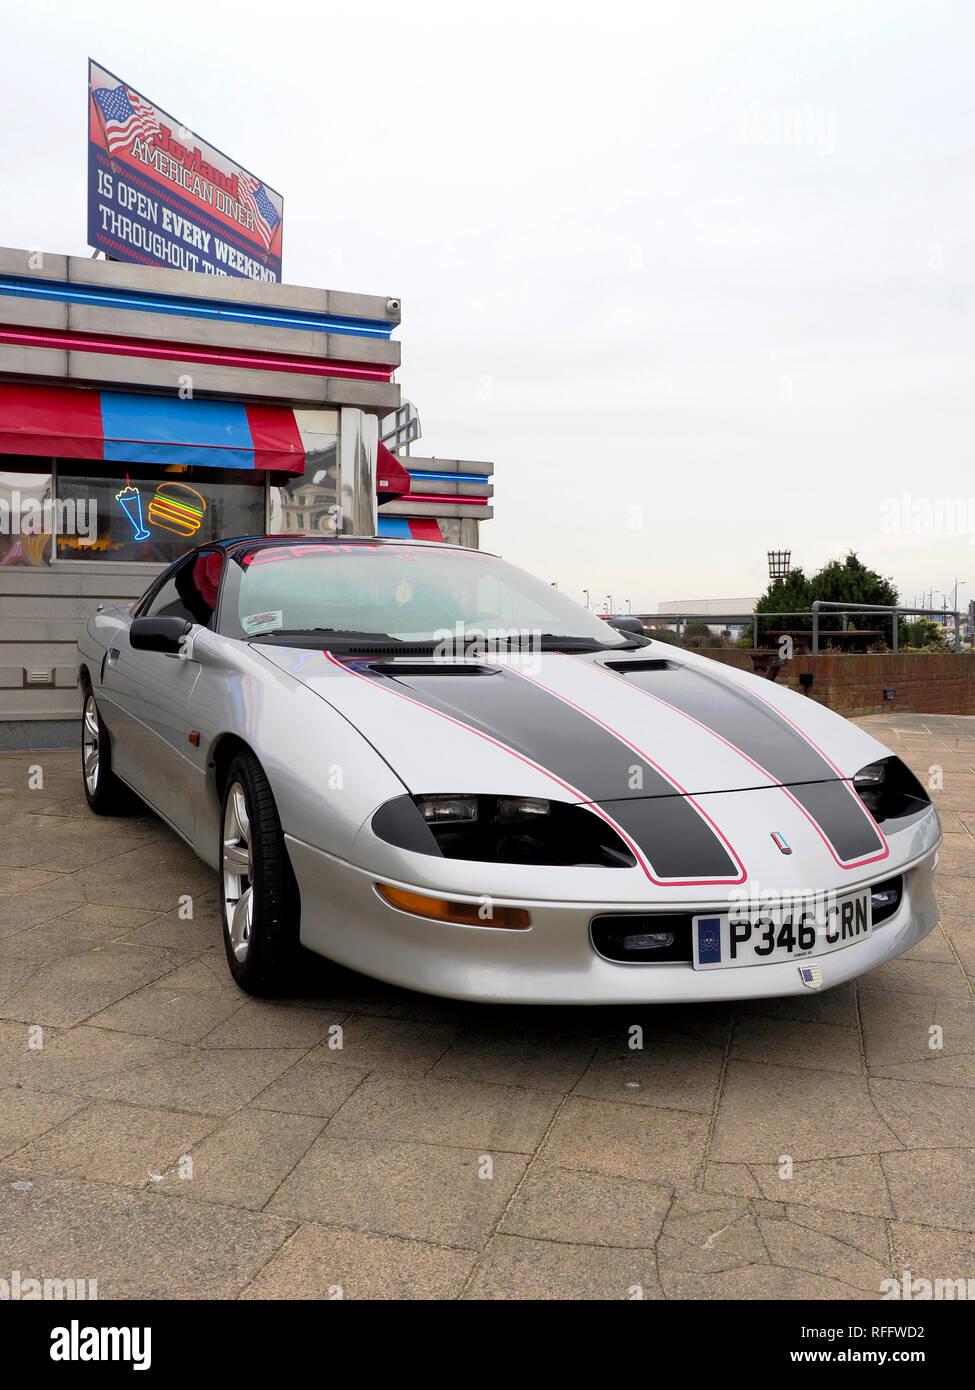 A silver fourth generation Chevrolet Camaro sports coupe from the late 1990's at a classic car meet in Great Yarmouth. Stock Photo